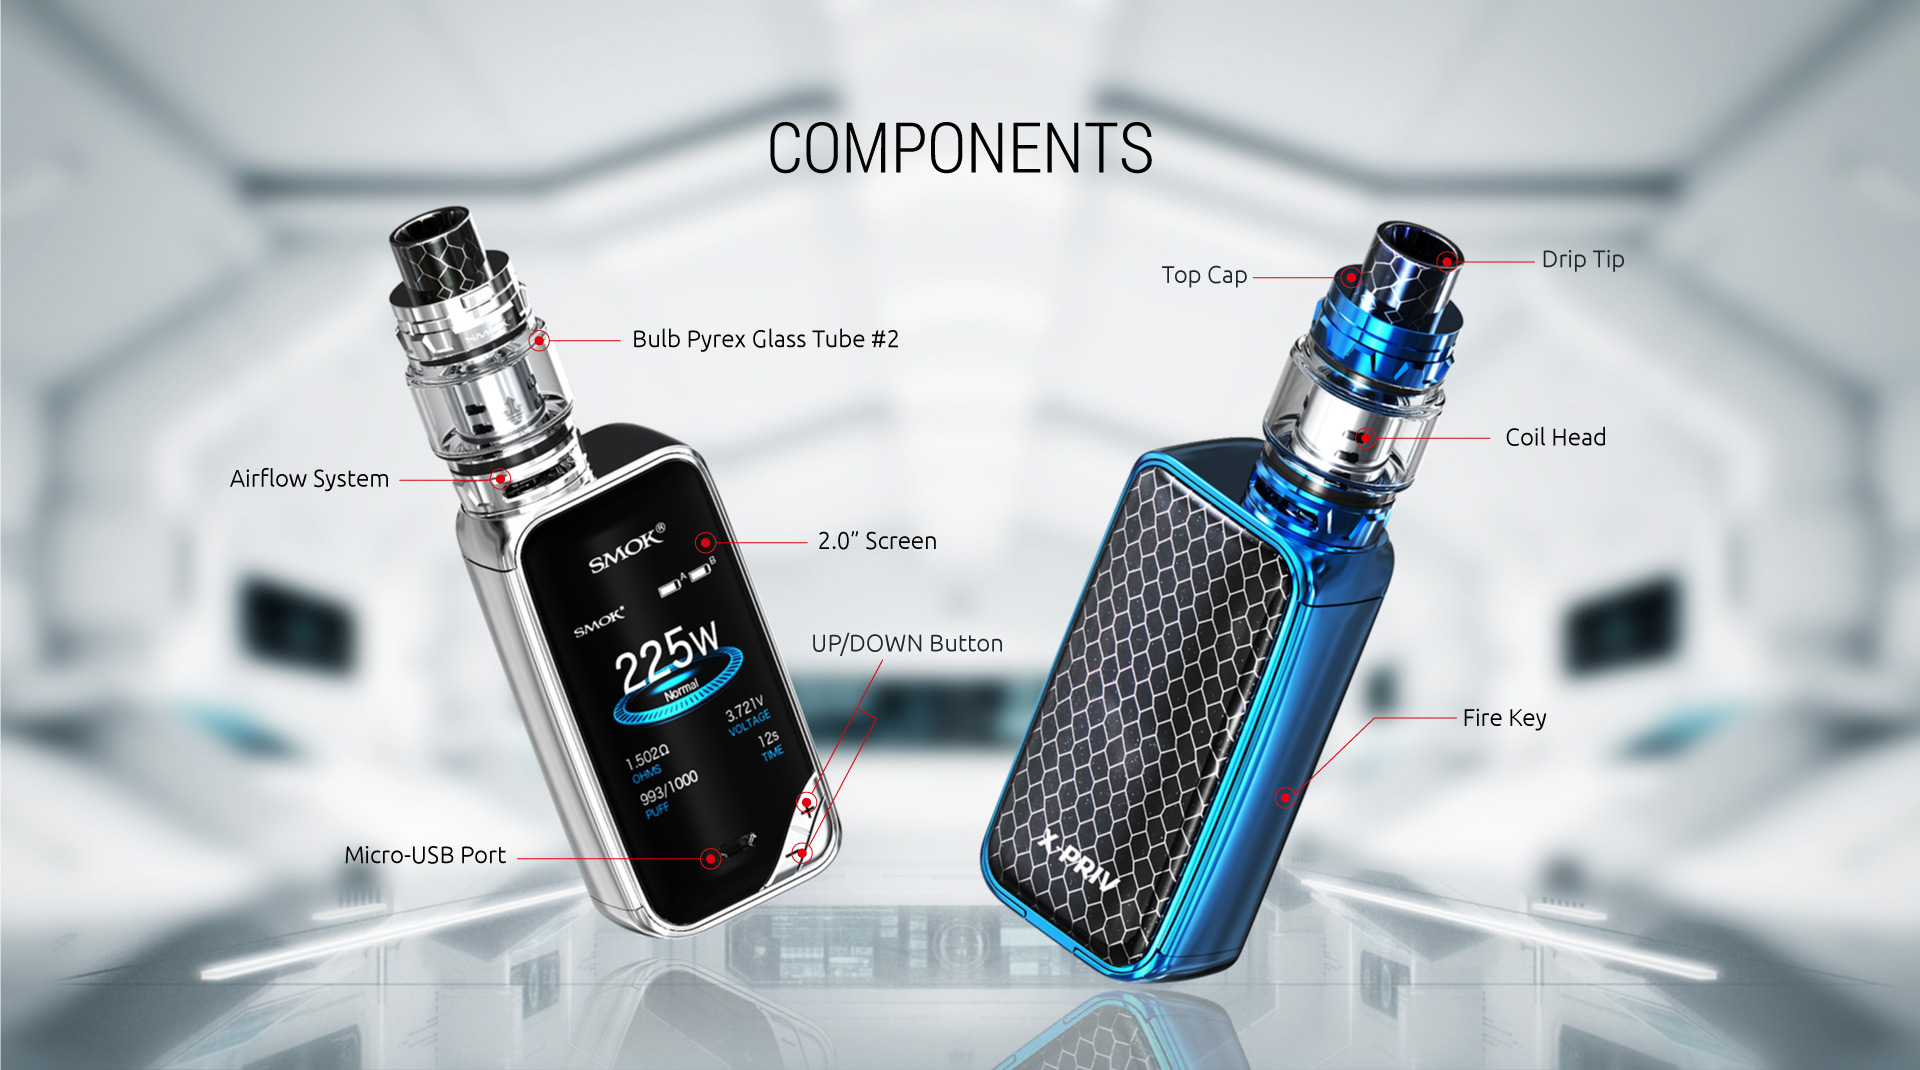 Smok X-Priv 225W Kit components